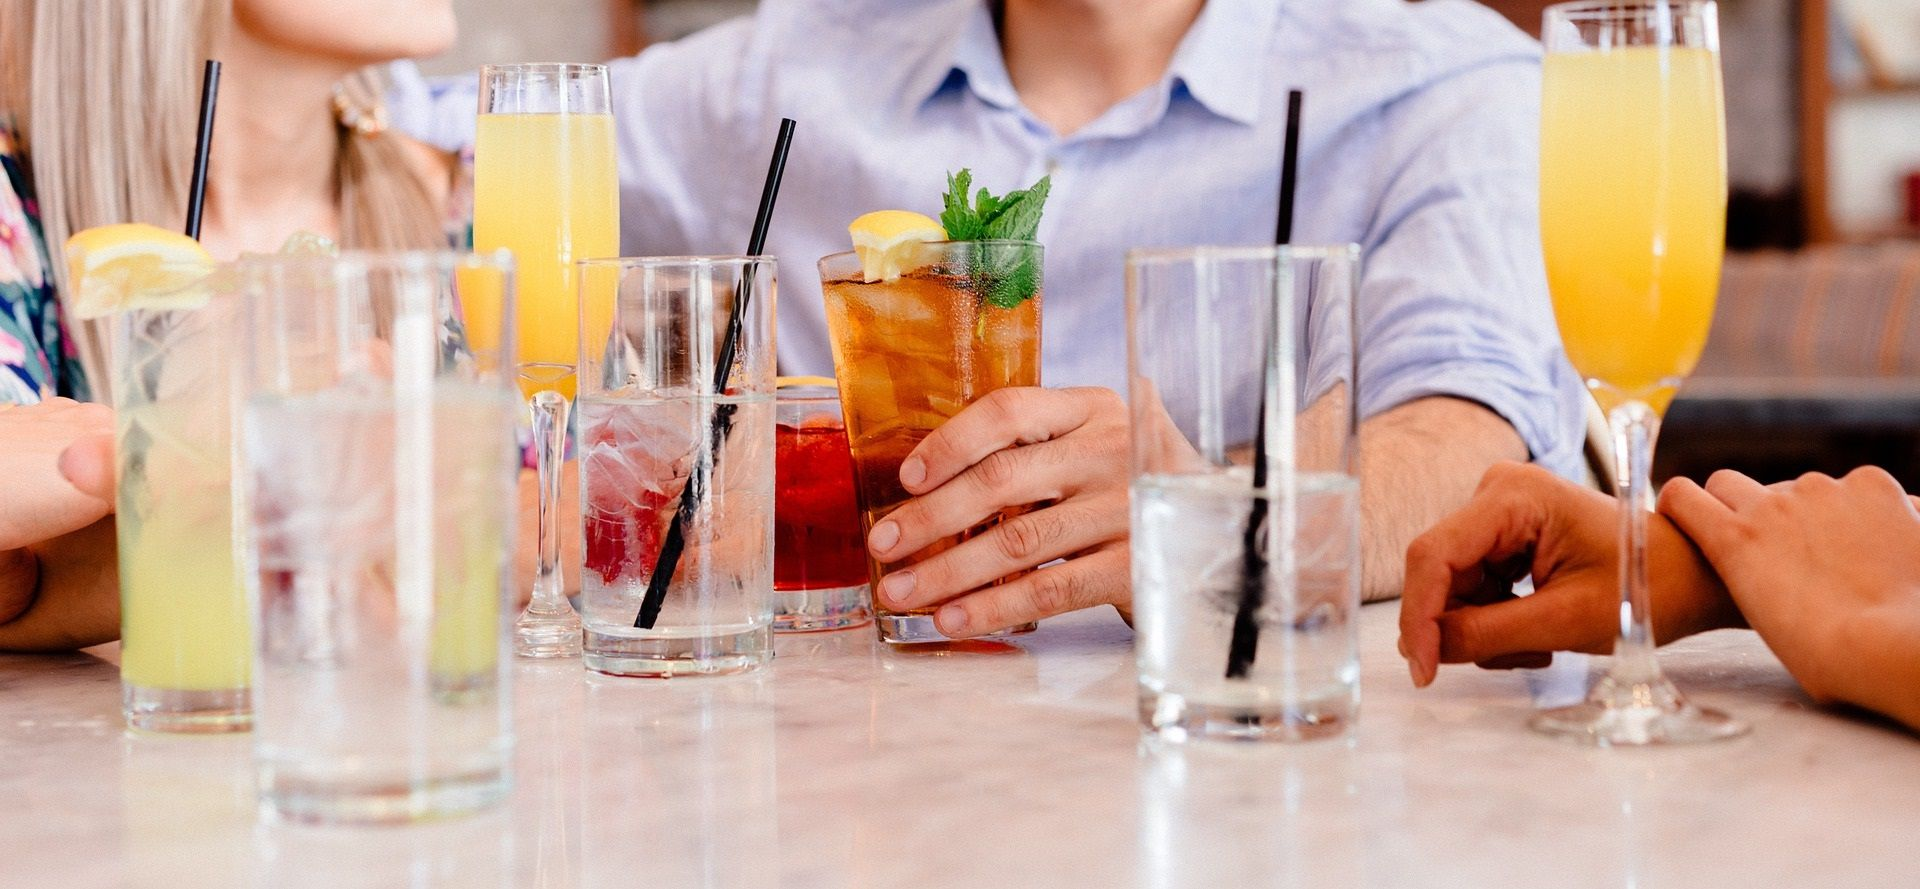 10 Top Sa Cocktail Spots For Your Summer Holiday photo